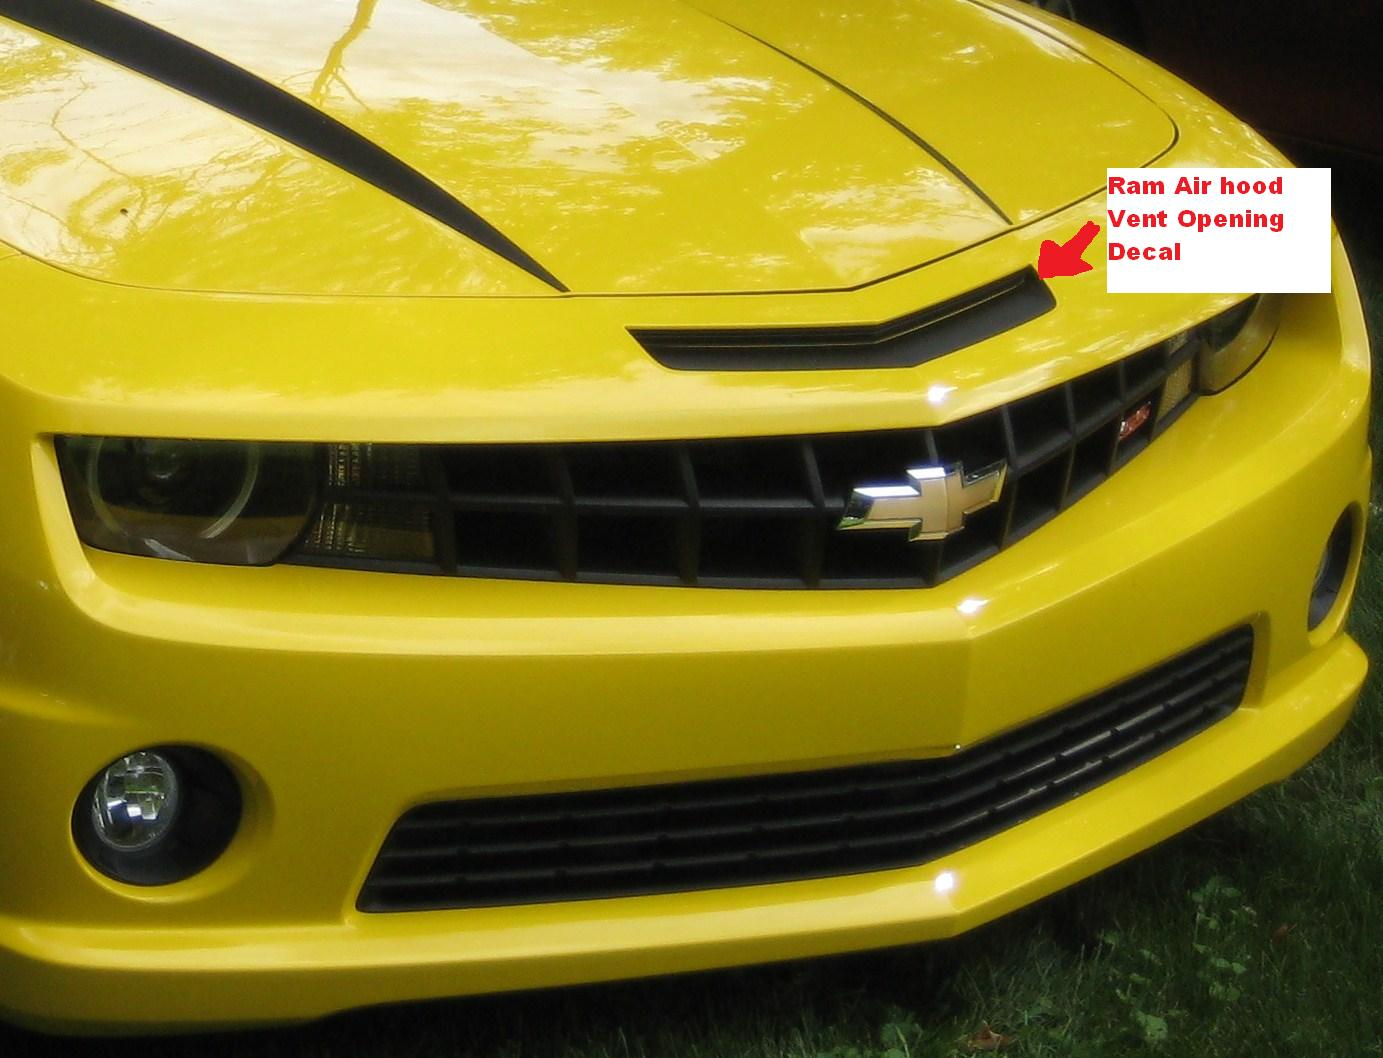 2010 - 2011 Camaro Ram Air Nose Vent Decal